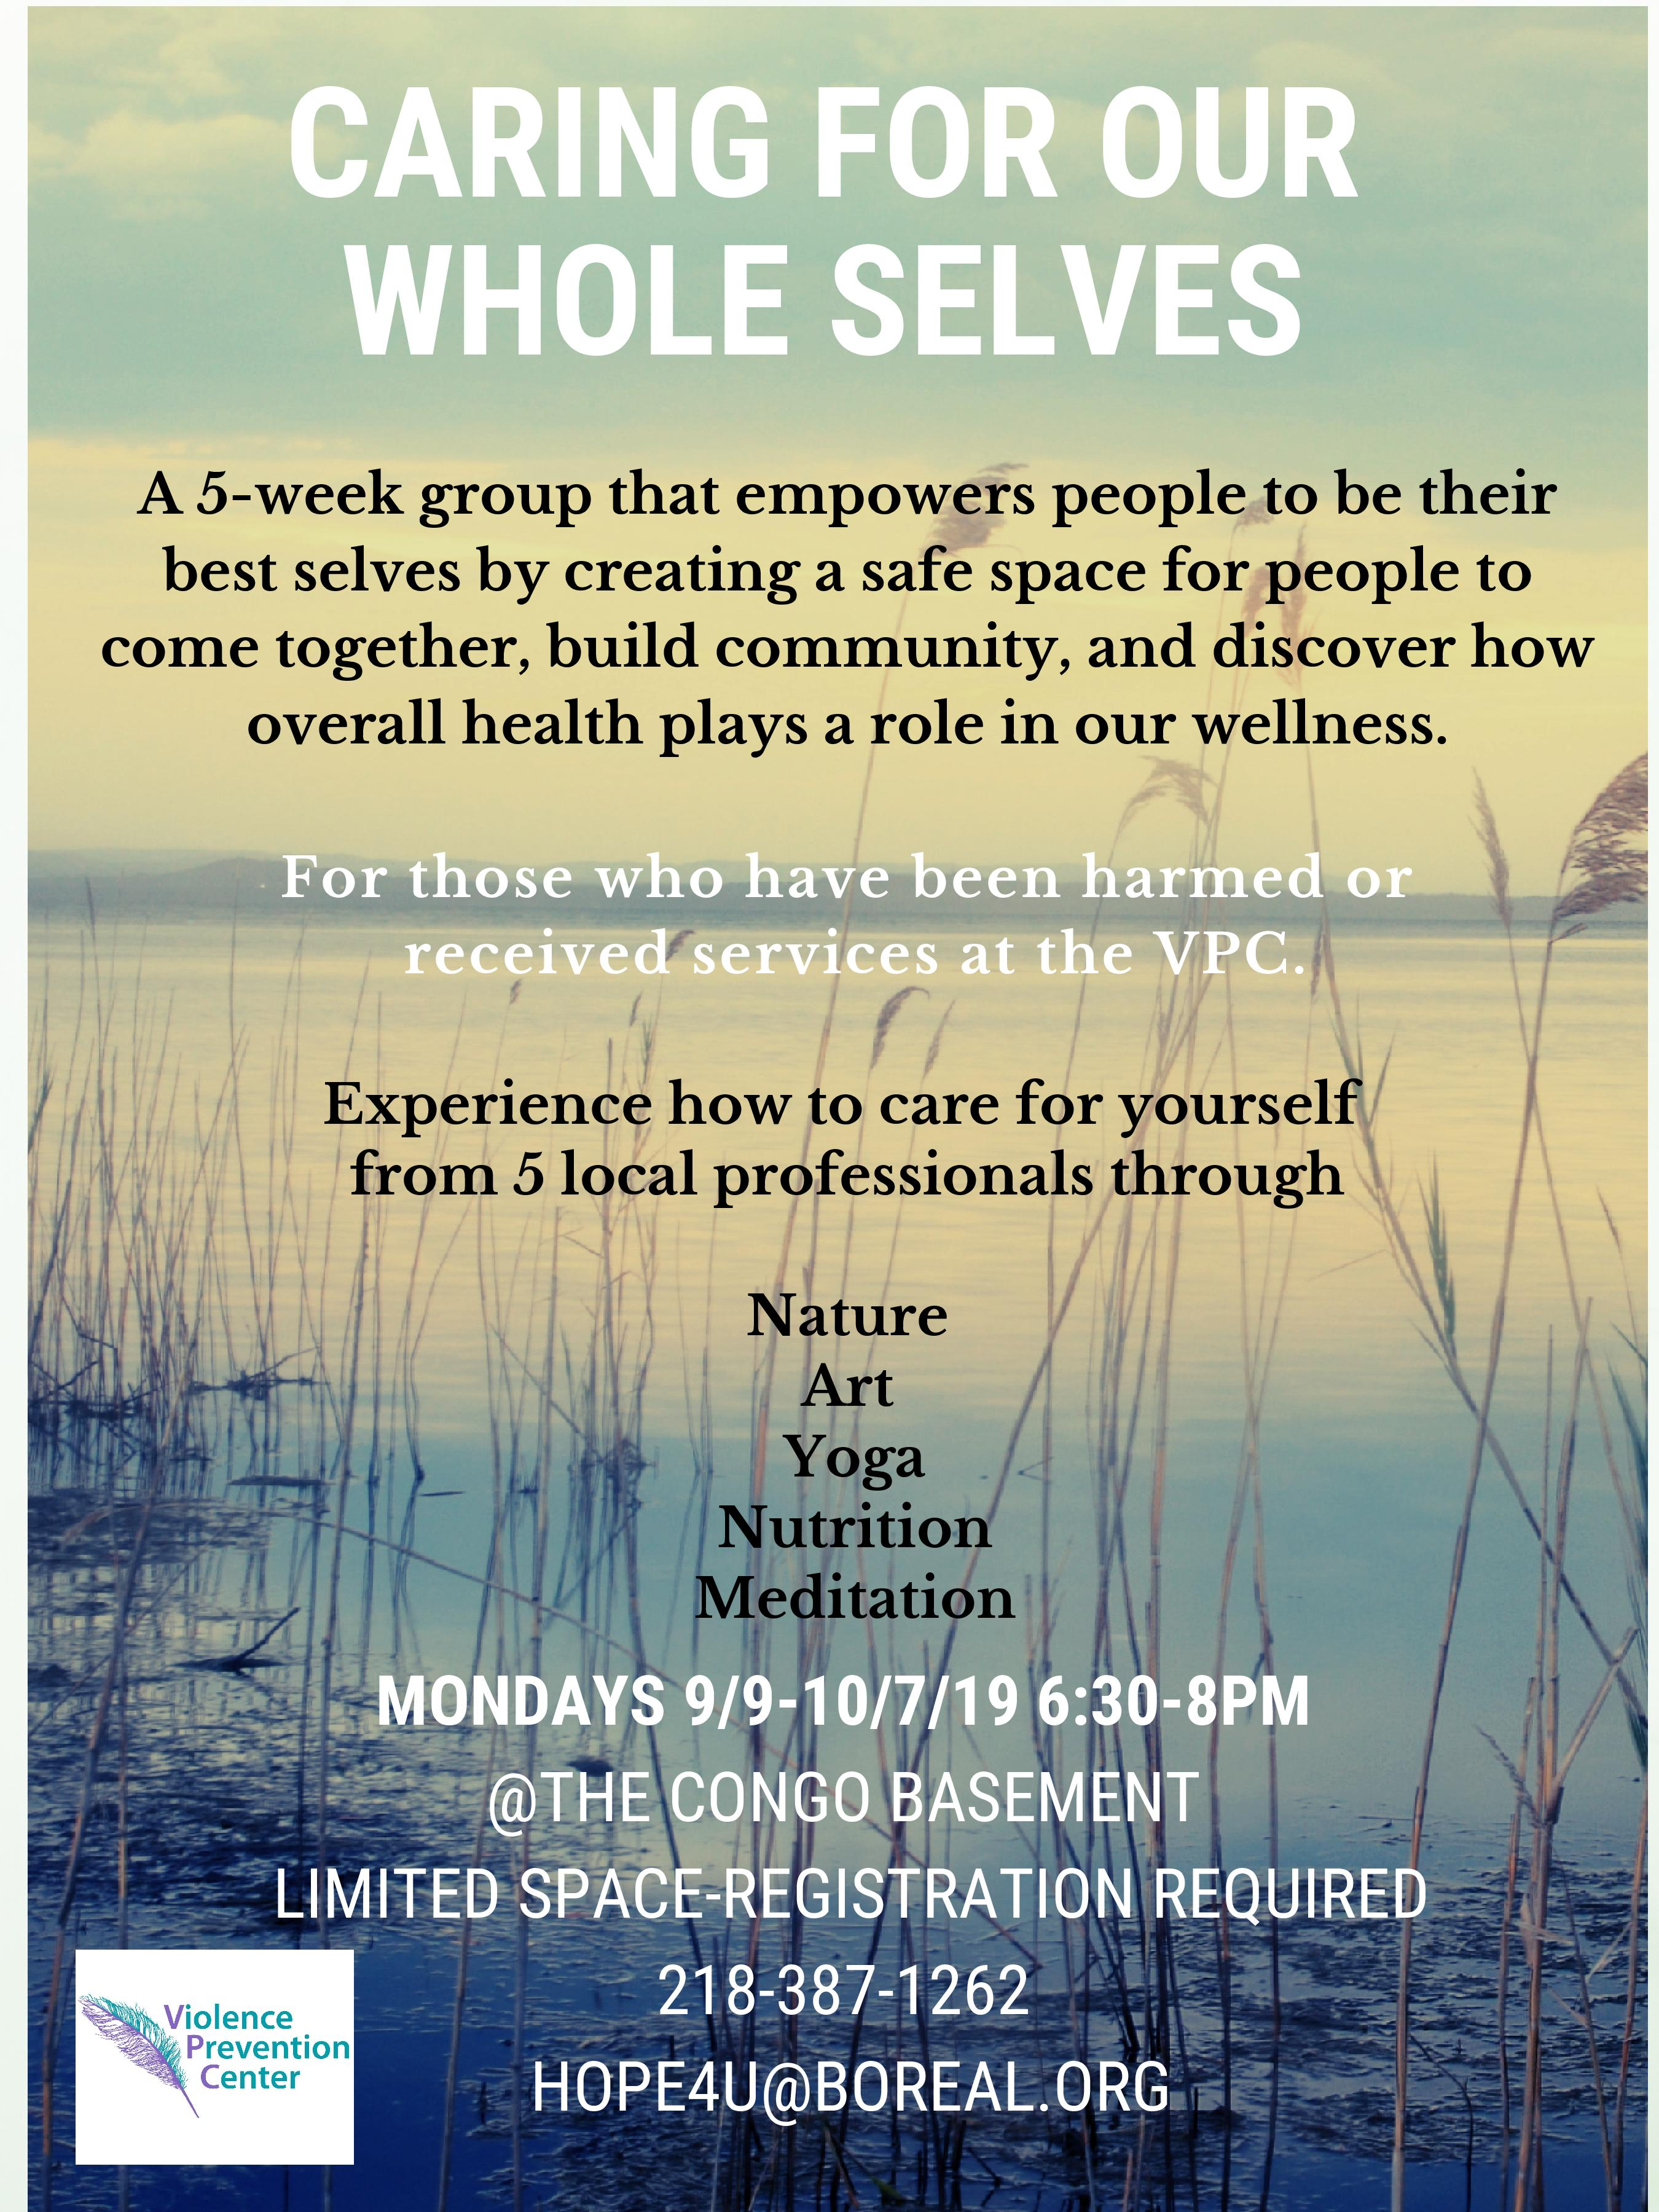 Caring for our whole selves Poster